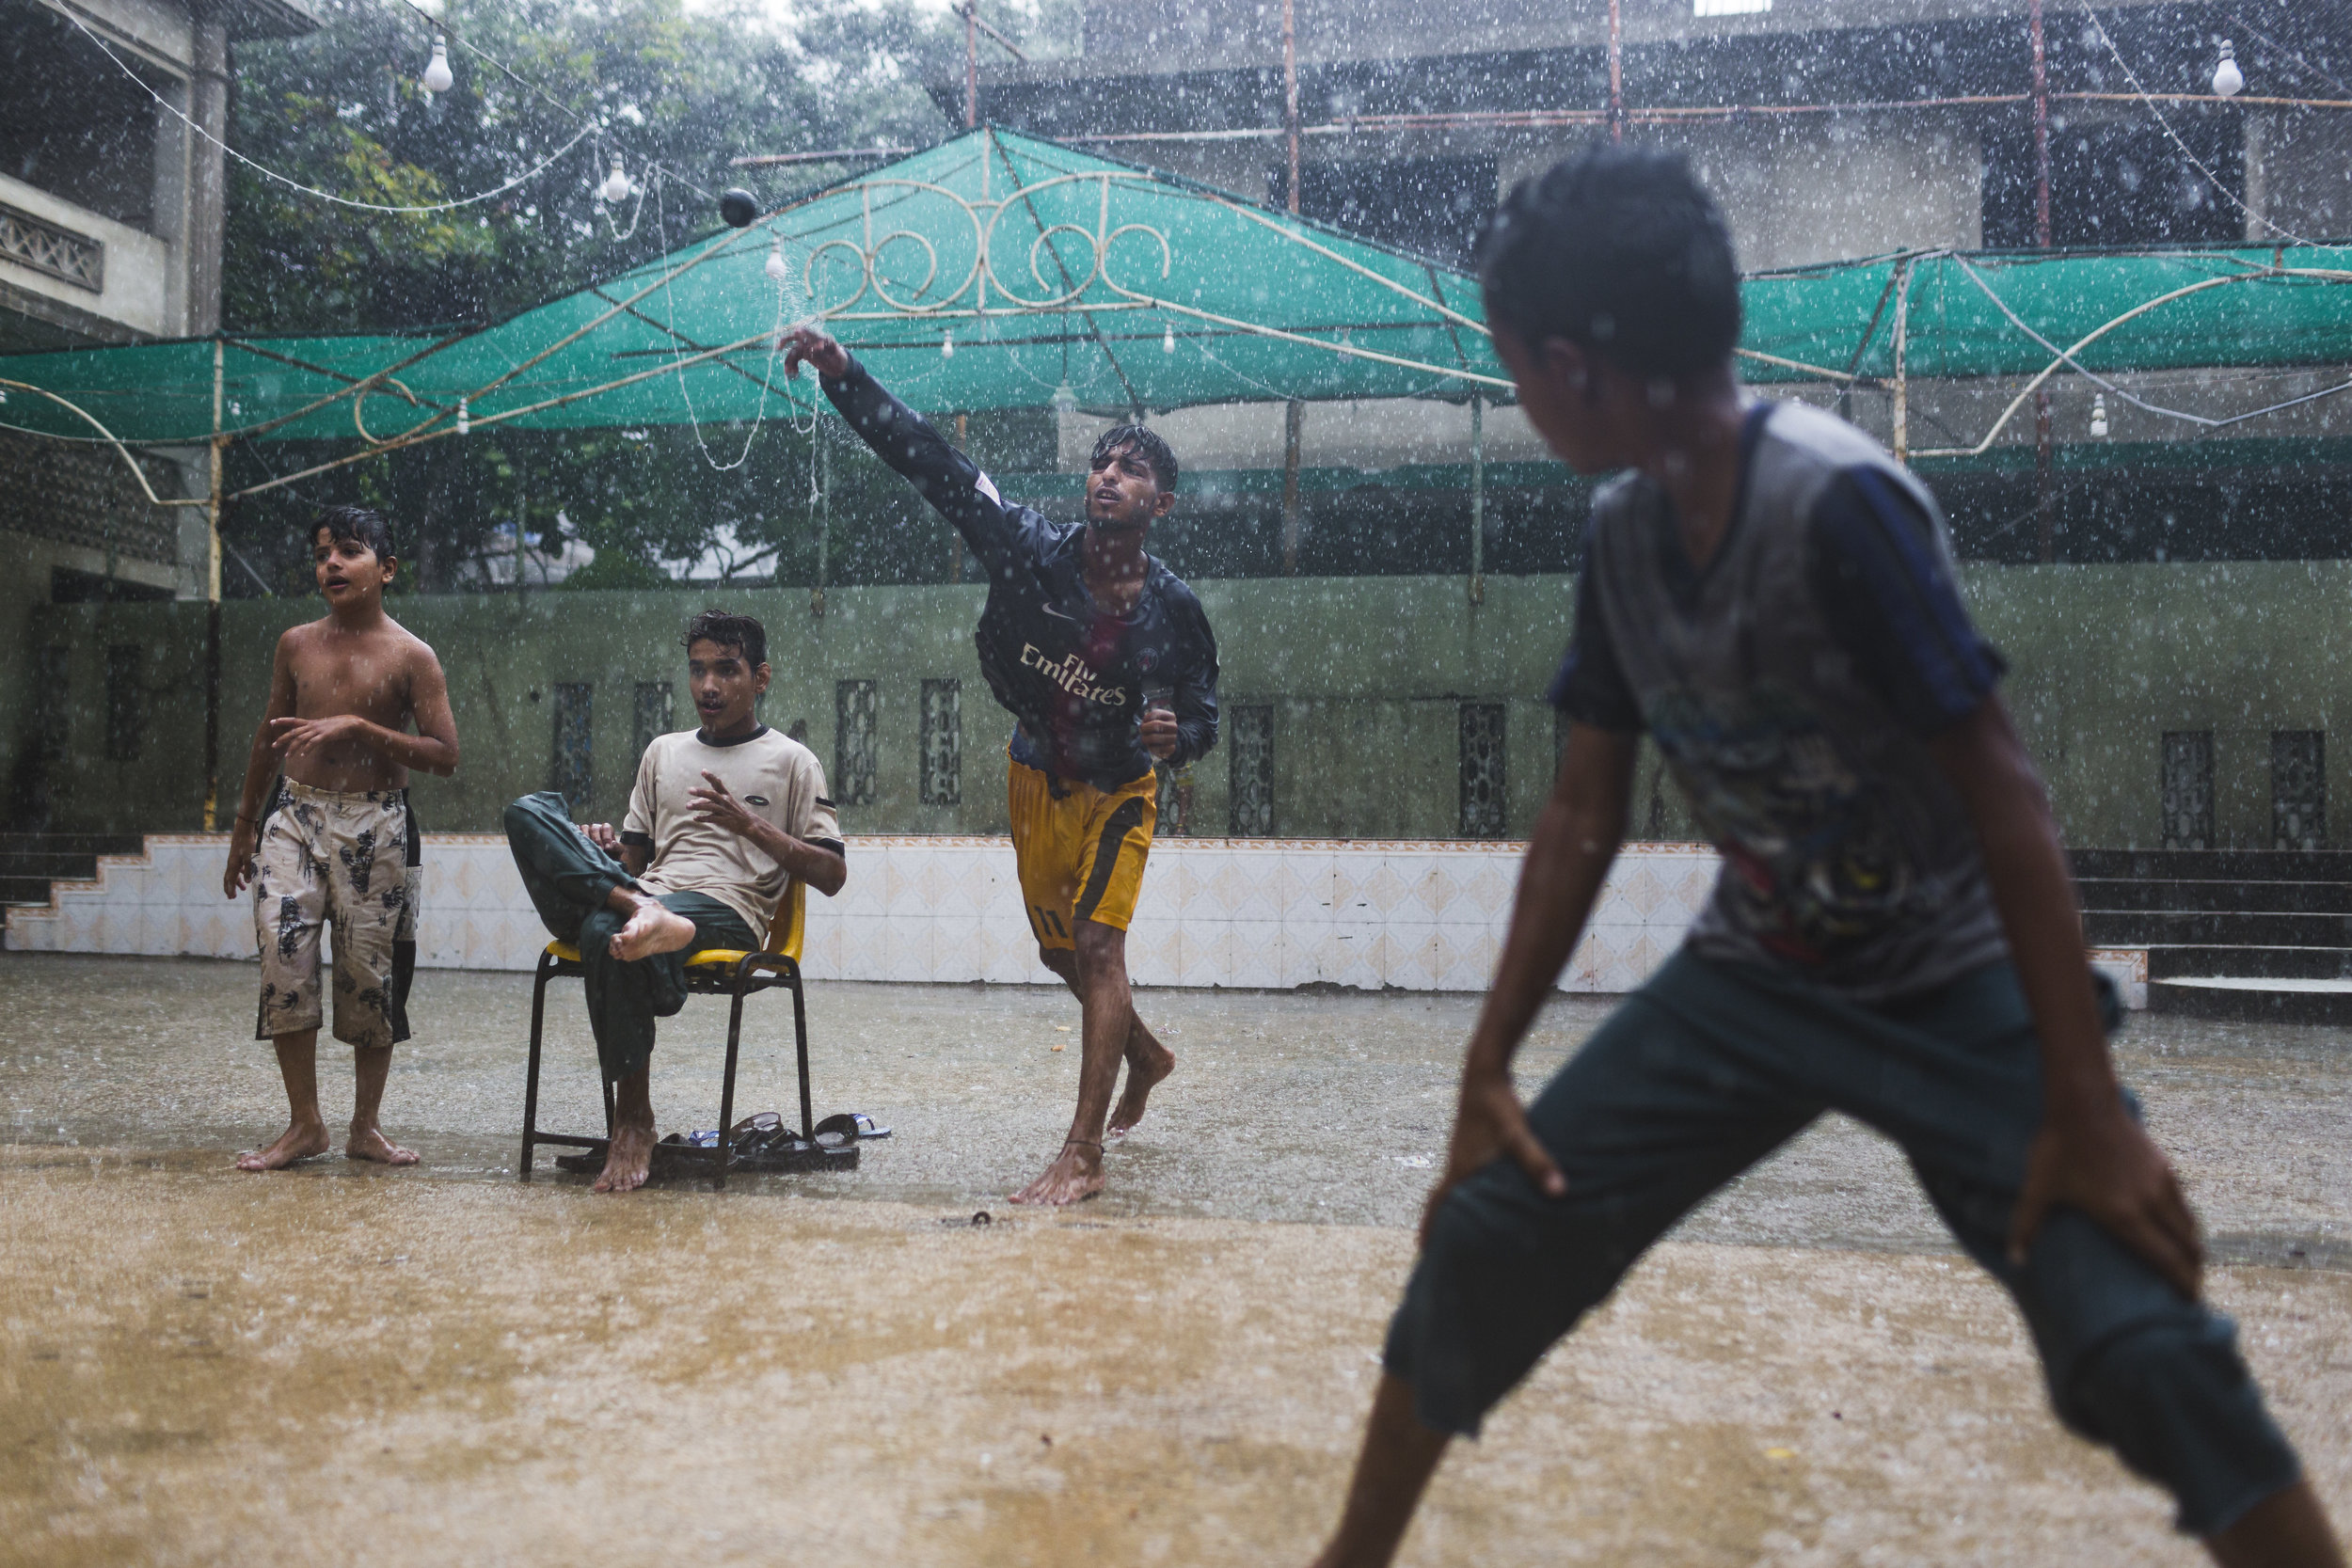 Lyari youth play cricket in torrential rains in Karachi, Pakistan on Tuesday July 30, 2019. The municipal government has released a weather advisory of monsoon rains and thunderstorms that may continue through Friday.